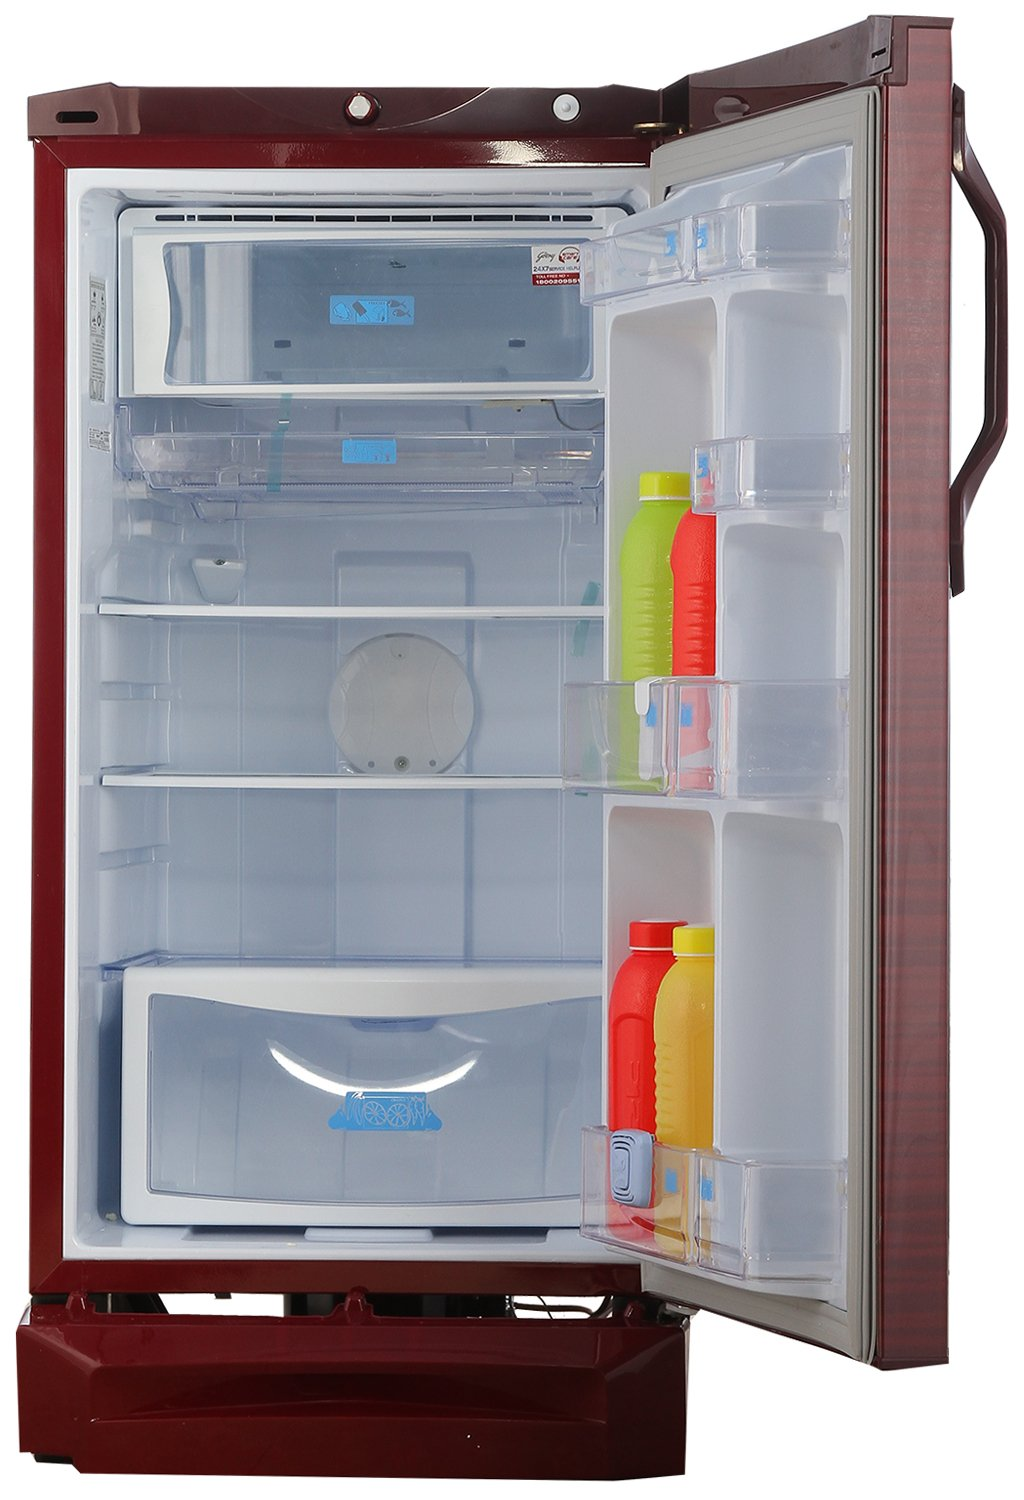 Uncategorized Godrej Kitchen Appliances godrej 195 l 5 star direct cool single door refrigerator rd edgezx cts 2 wine flora amazon in home kitchen